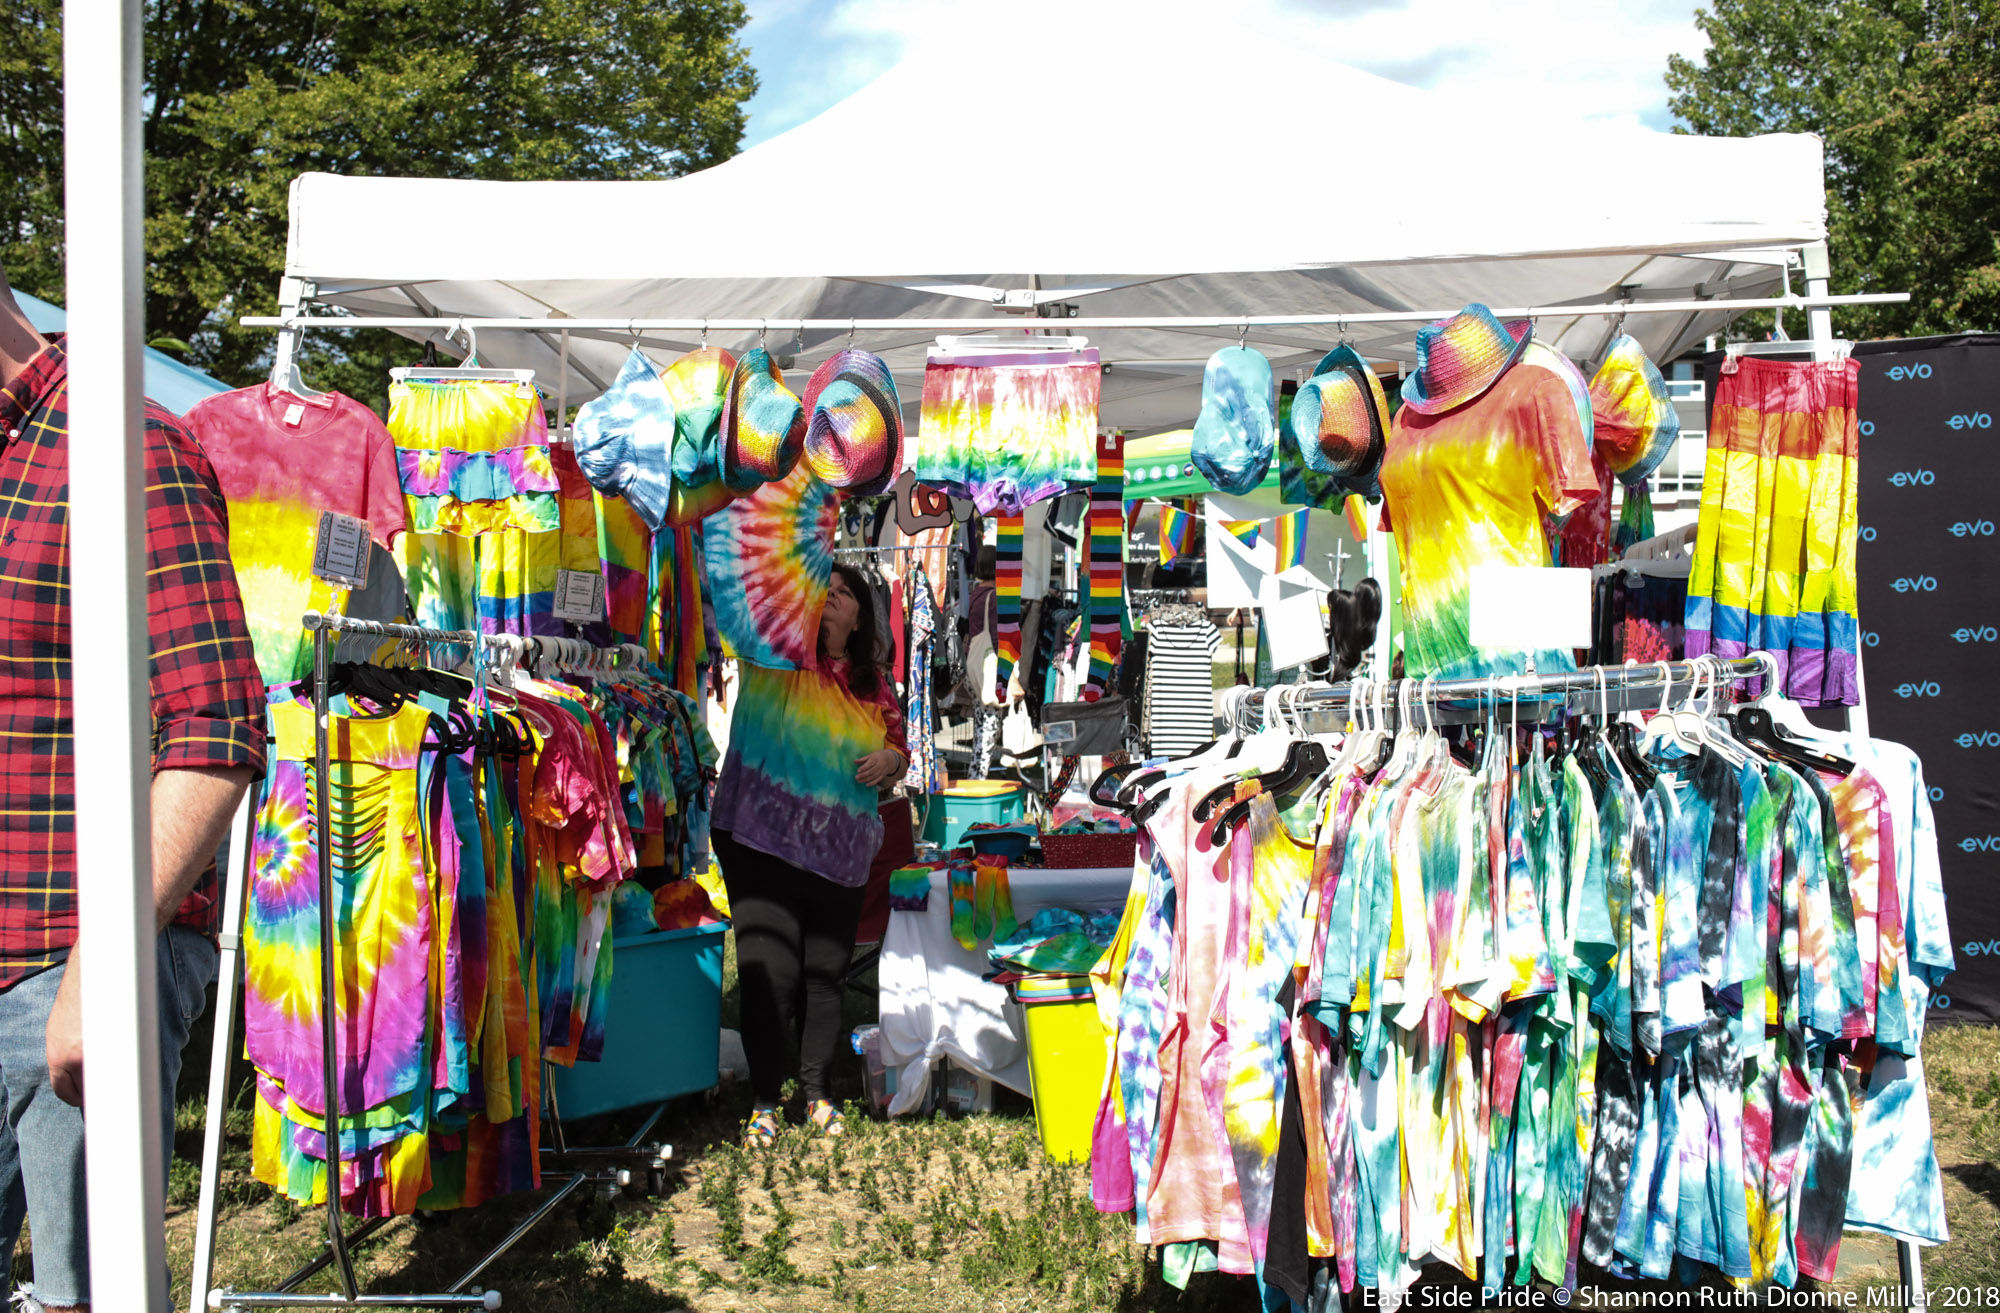 A vendor booth at East Side Pride 2018. The booth is outdoors under a white tent and is full of colourful tye dye outfits for sale.